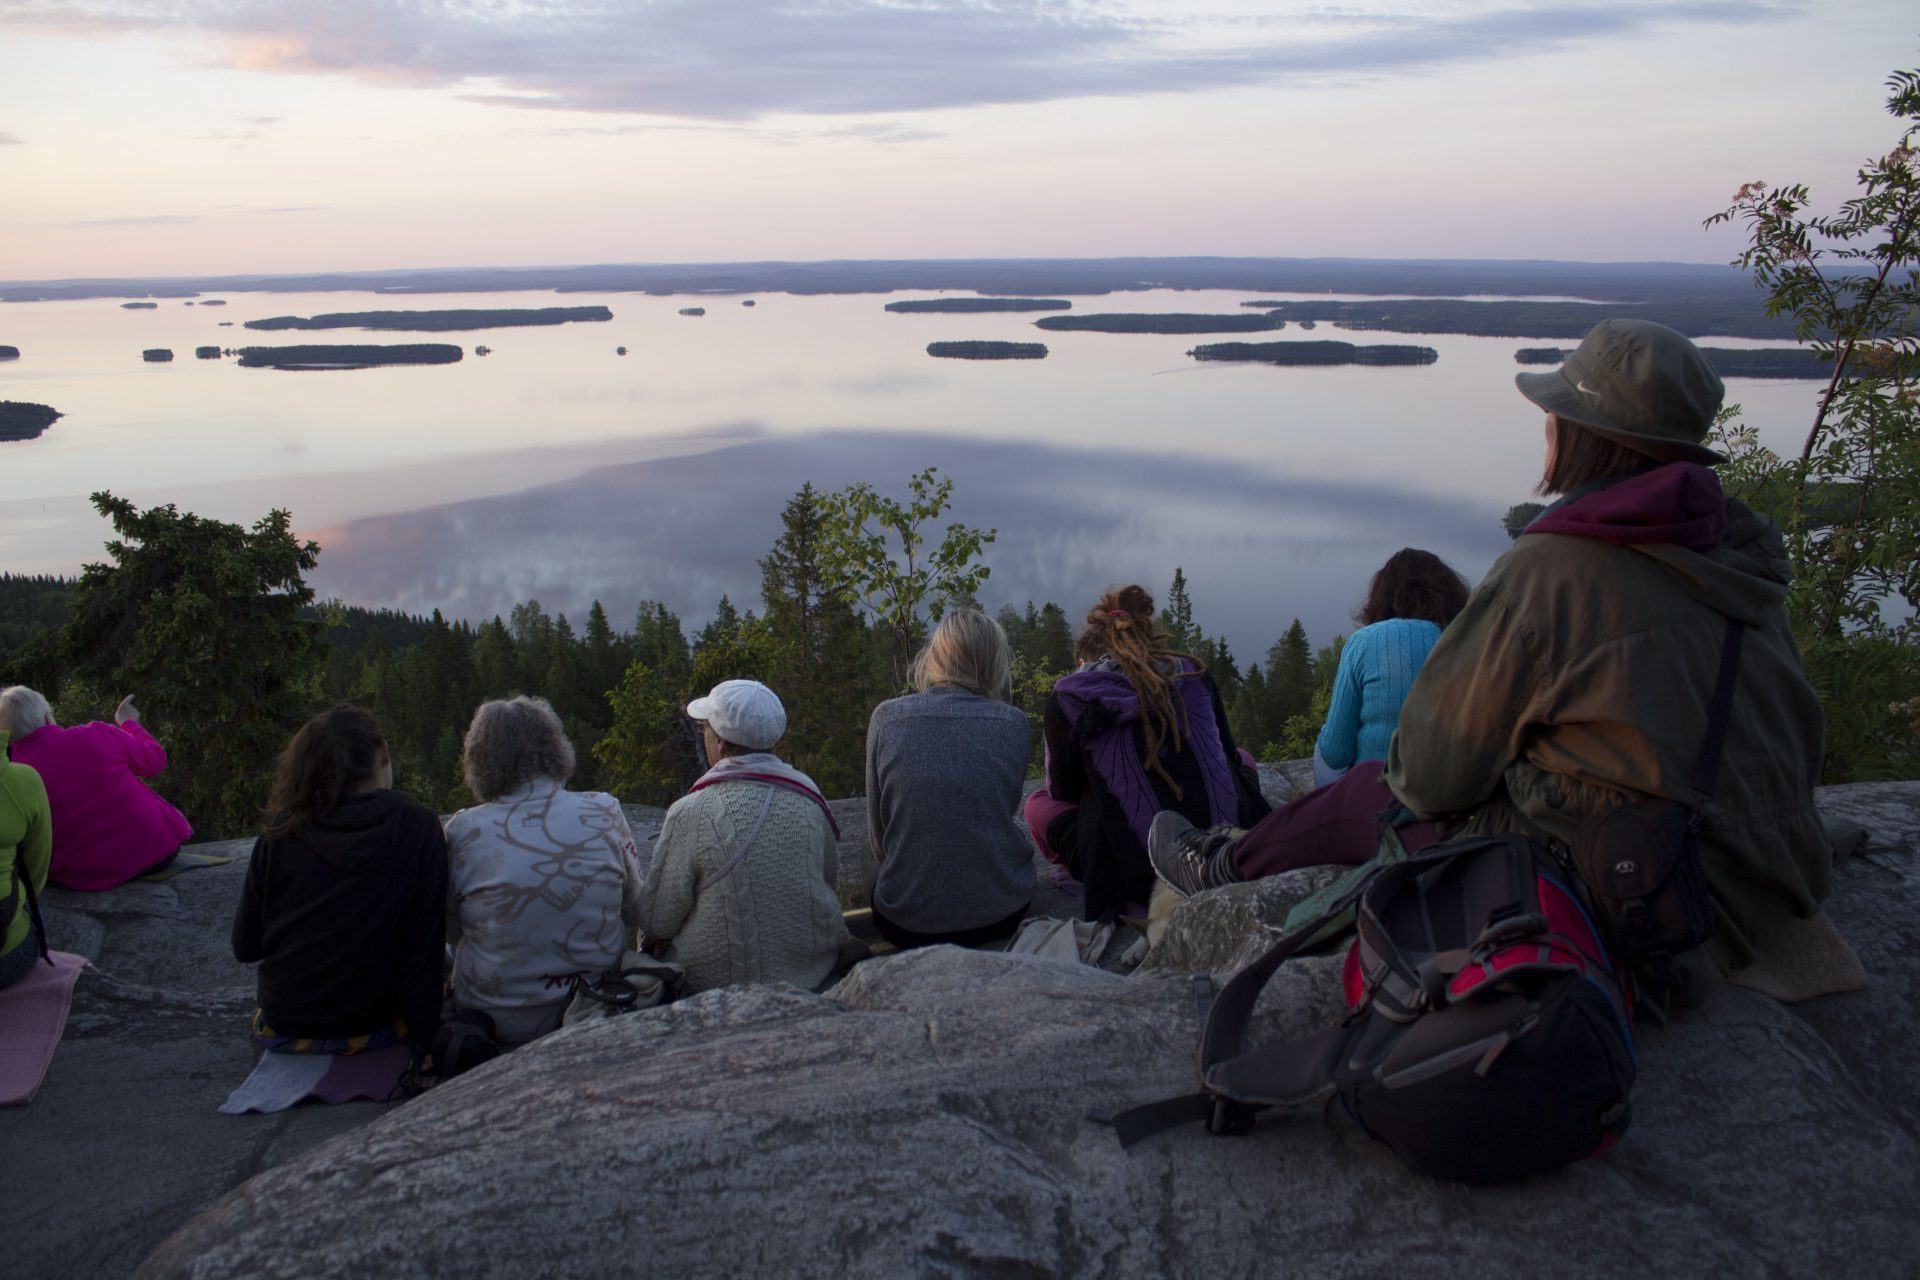 Image: Group of people watching sunset in Koli National Park.